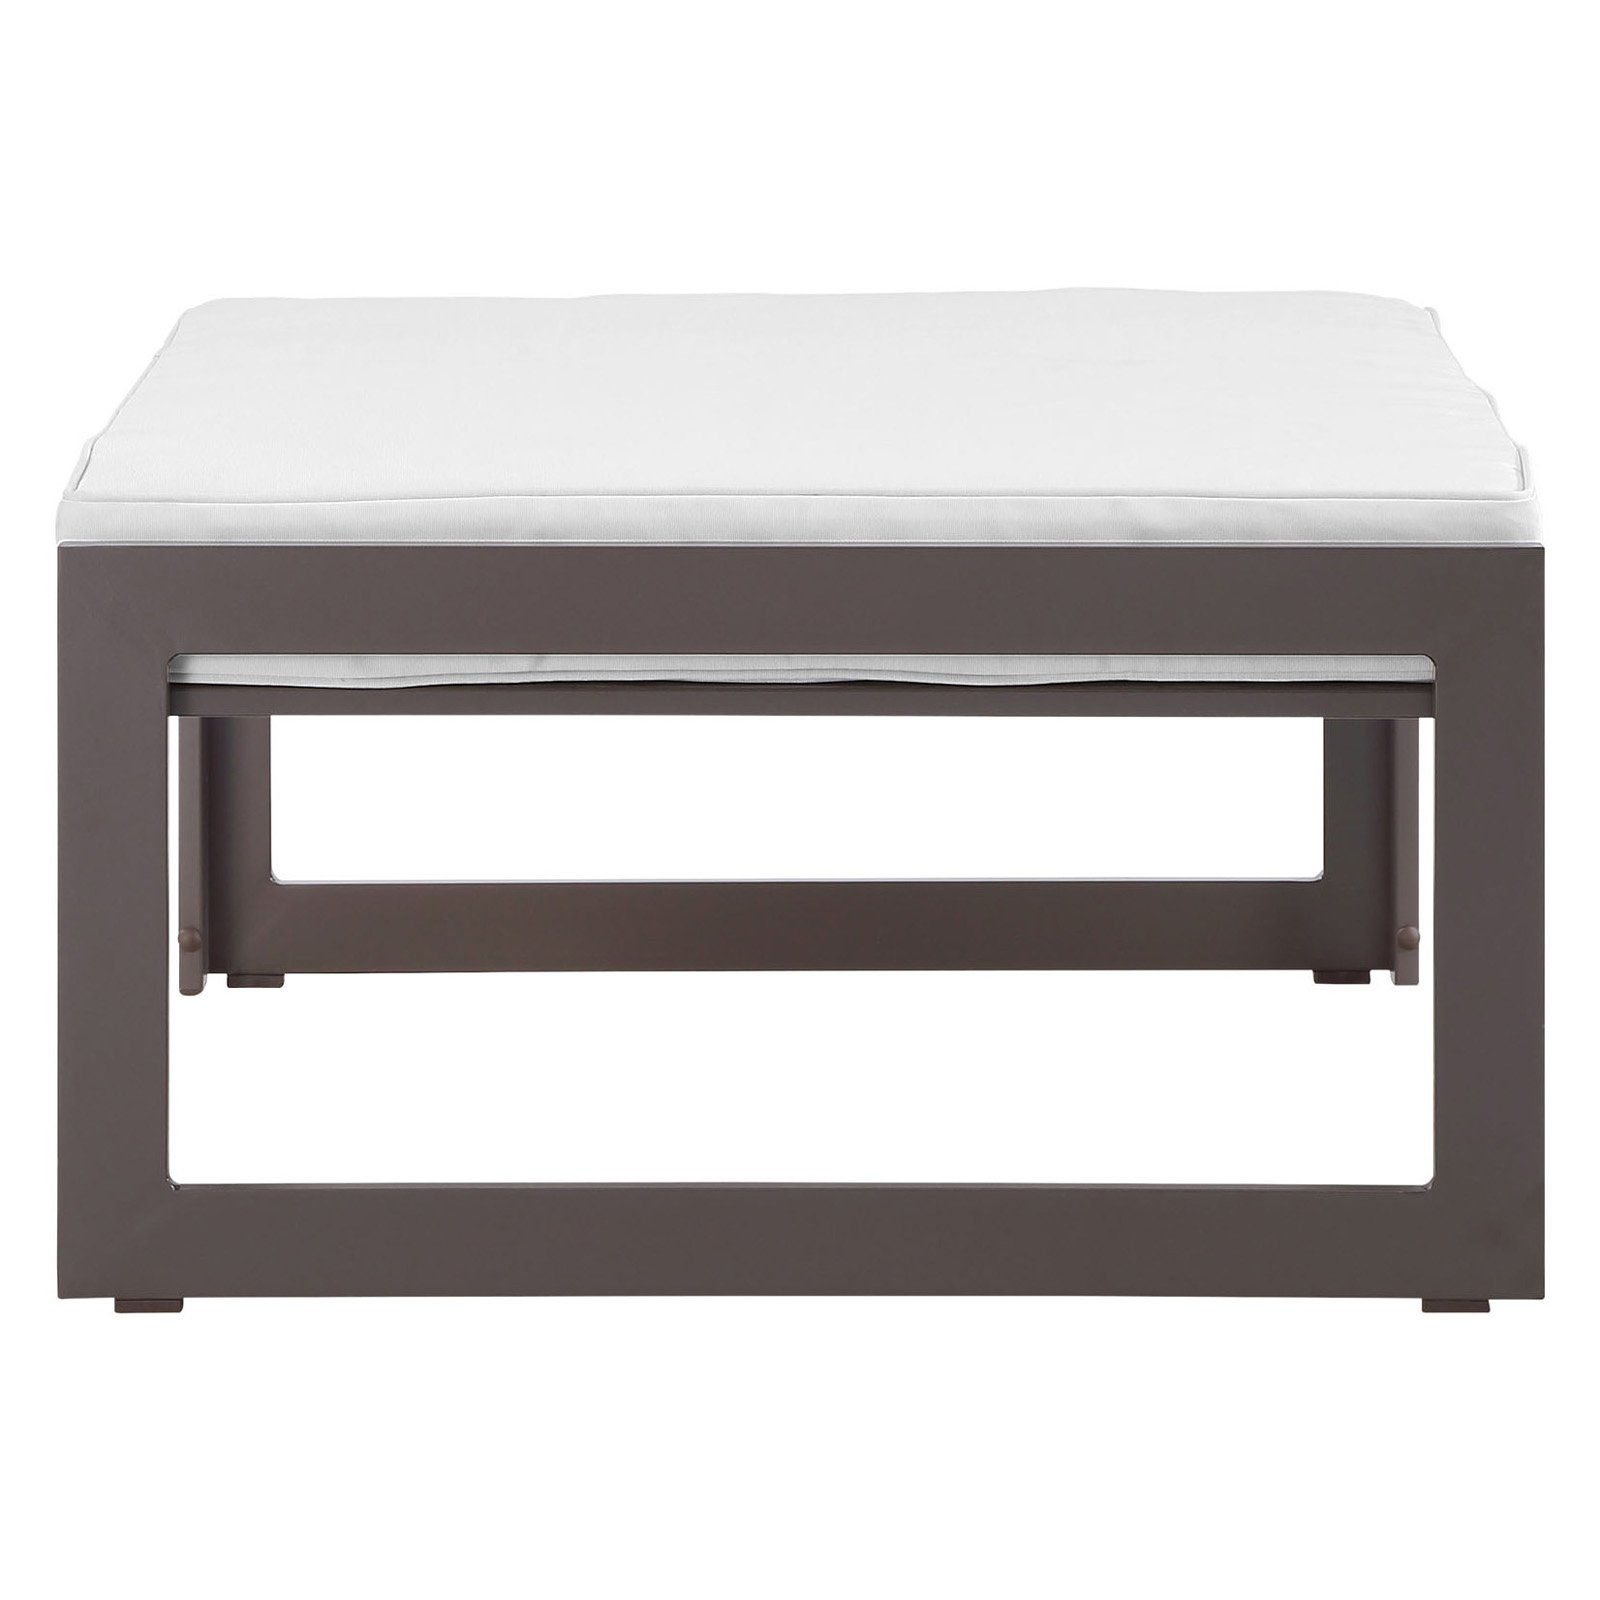 Modway Fortuna Outdoor Patio Ottoman, Multiple Colors